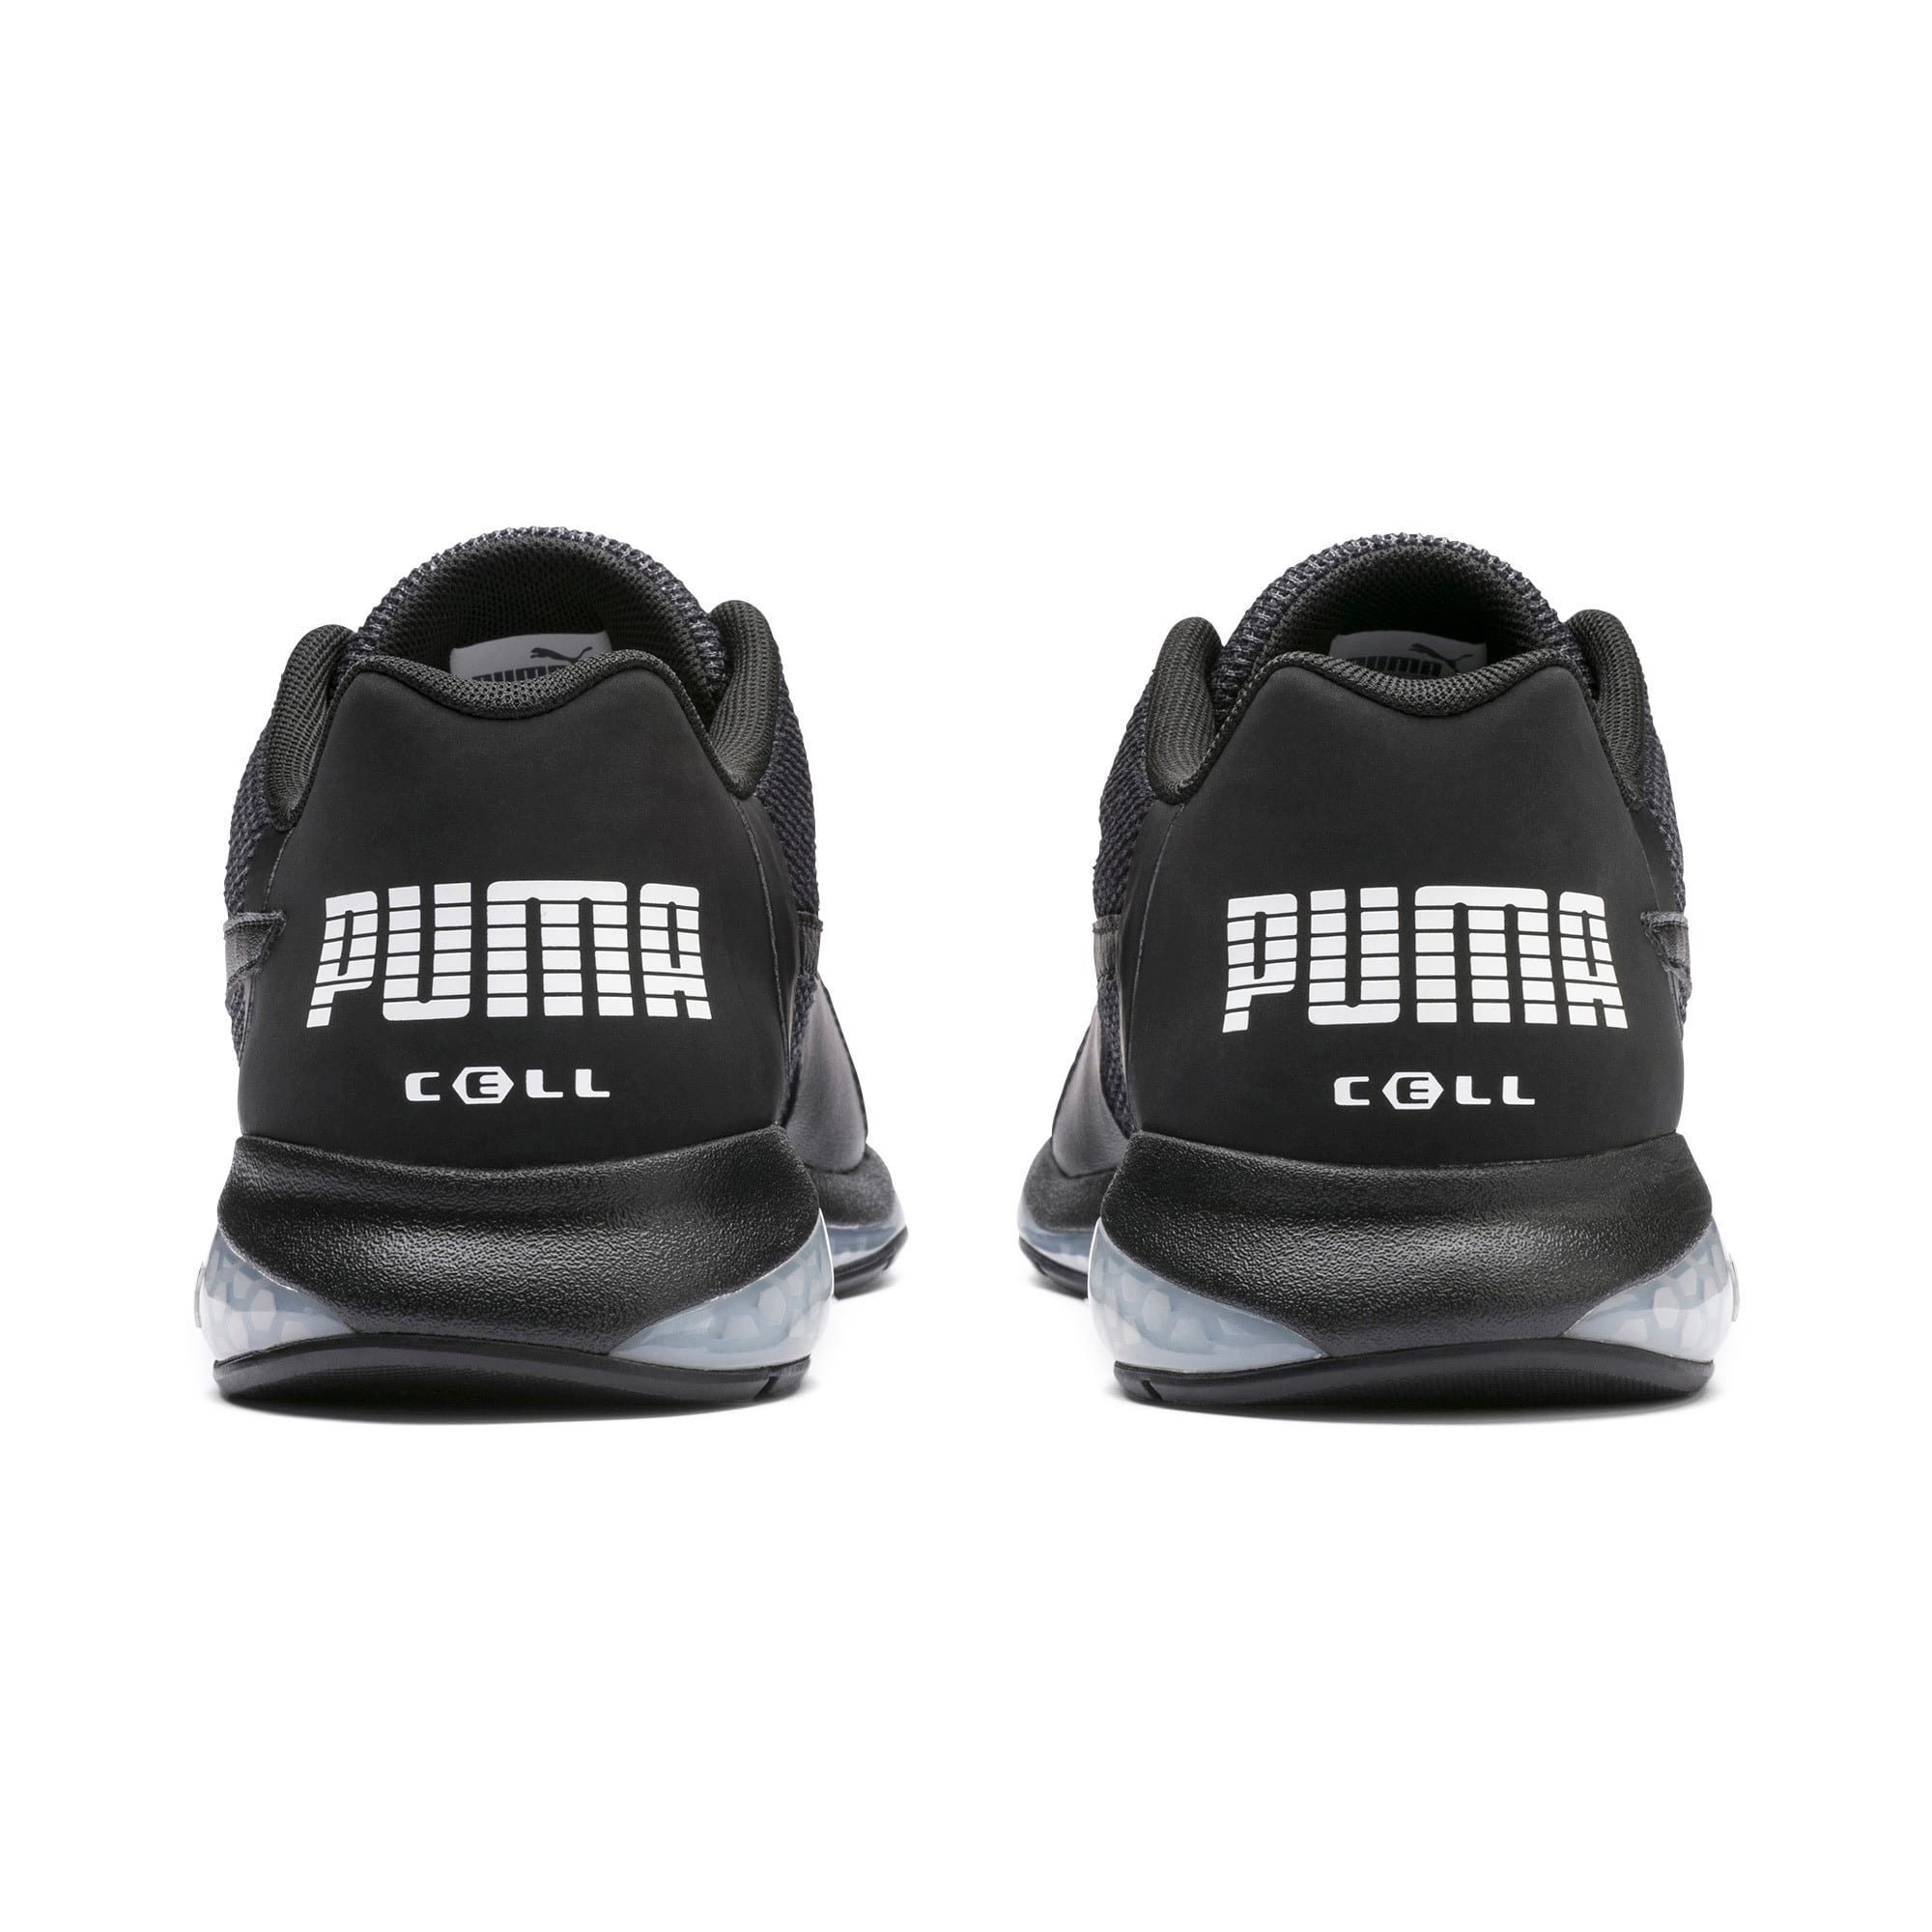 Thumbnail 3 of Cell Ultimate Point Knitted Men's Running Shoes, Puma Black-Puma White, medium-IND